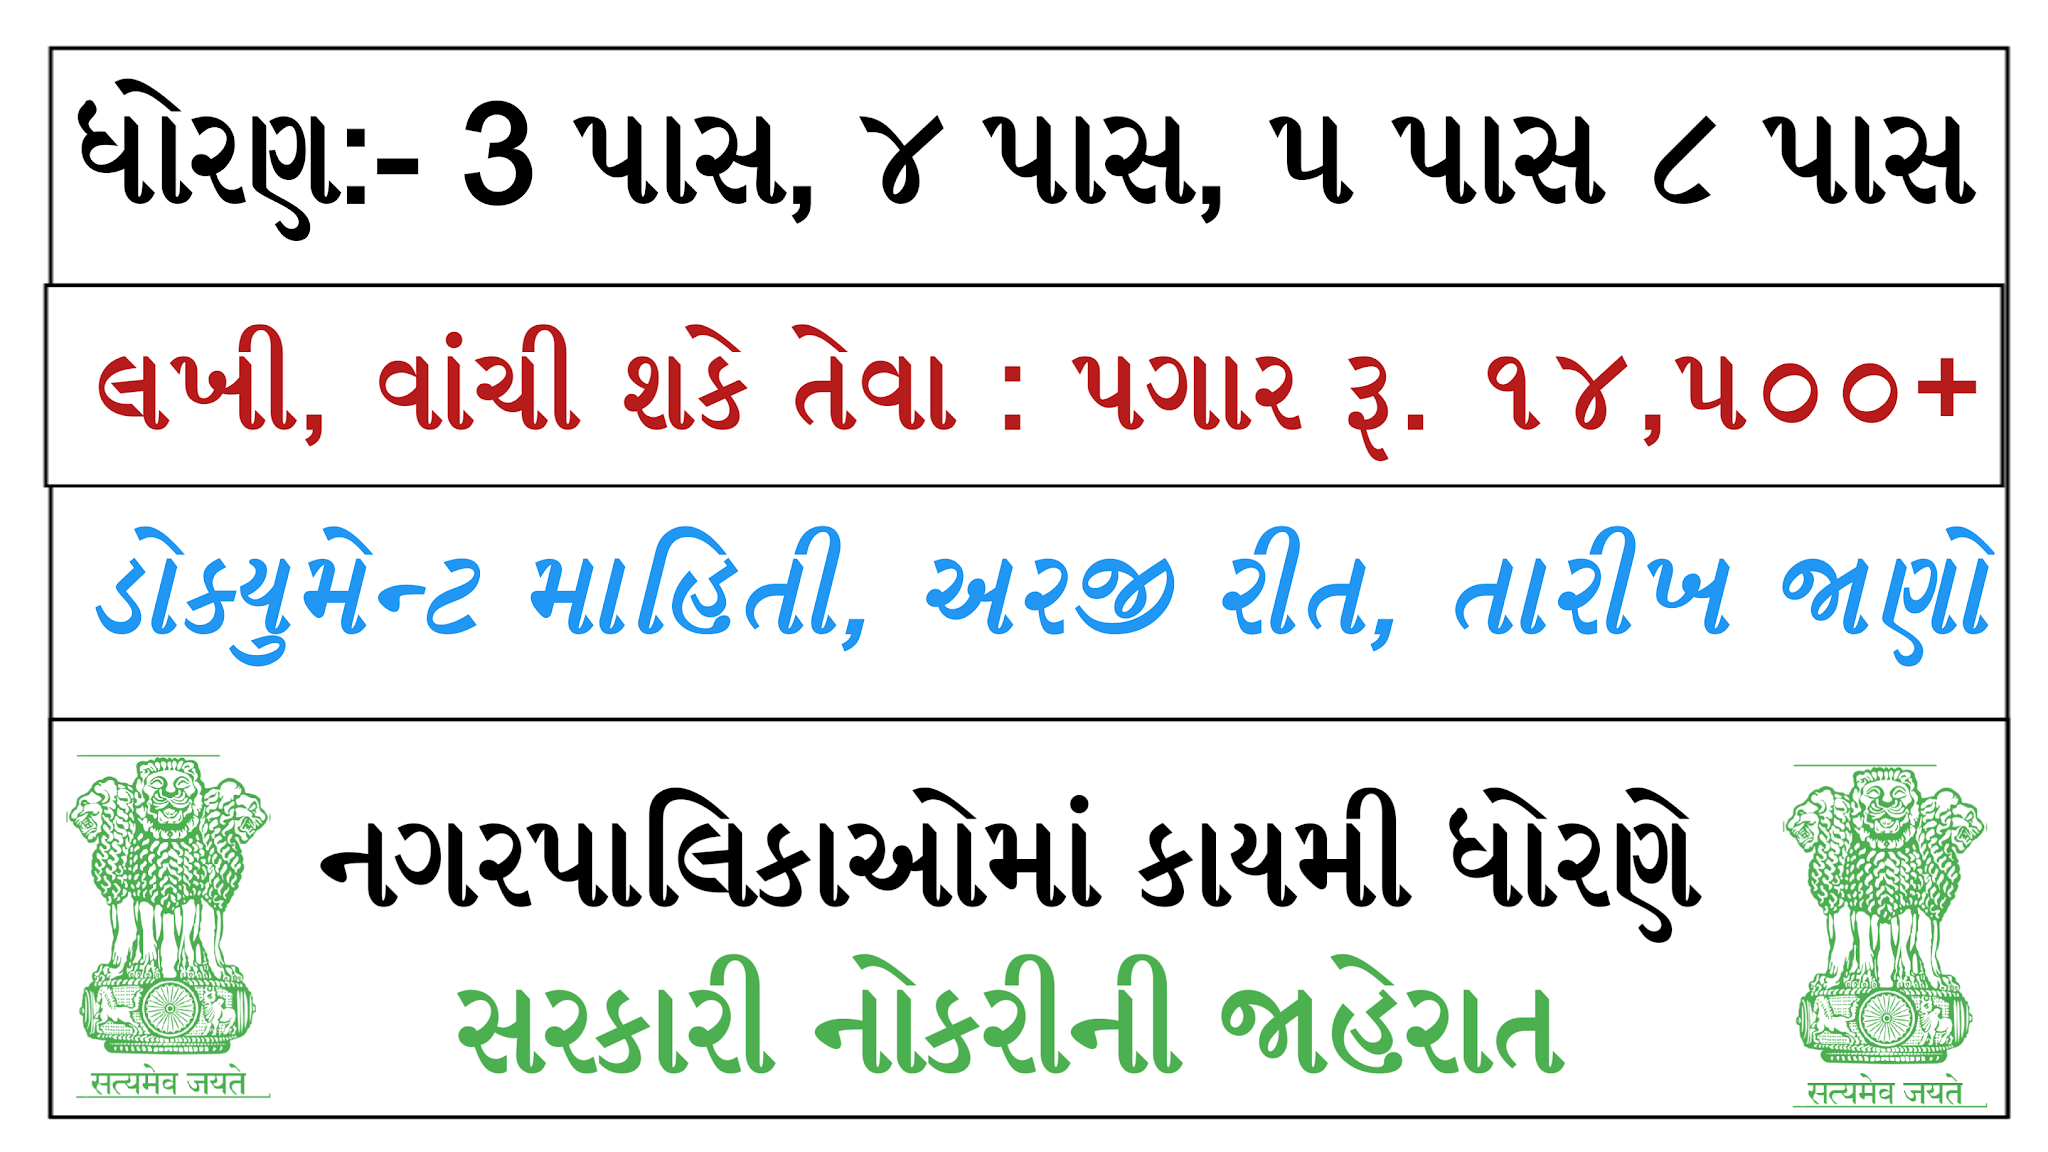 Gujarat Various Nagarpalika Recruitment For Safai Kamdar Posts 2021